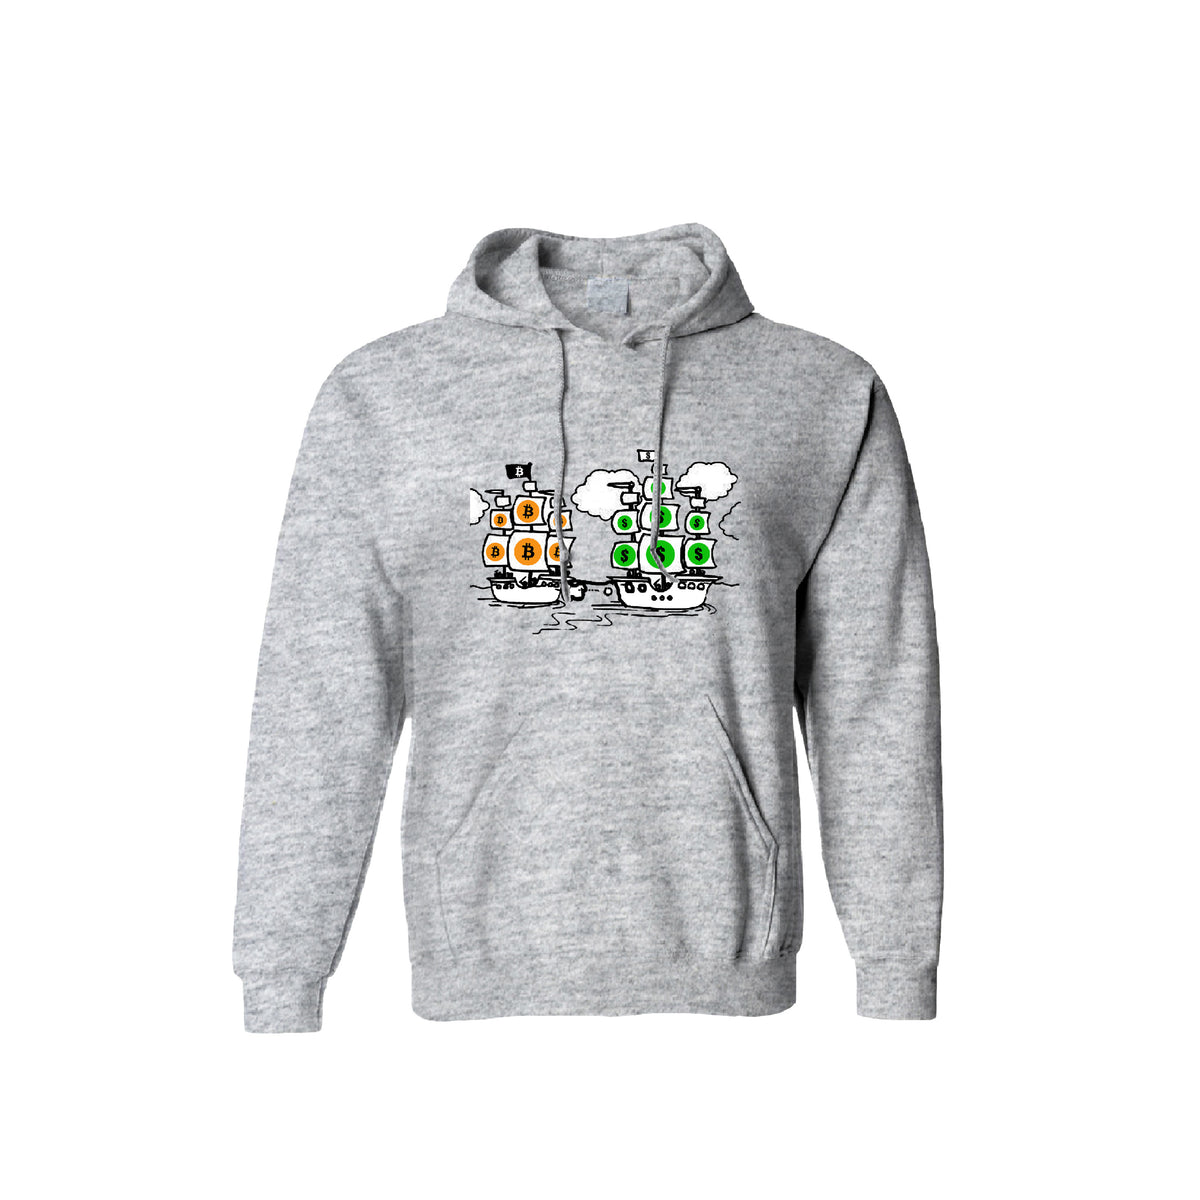 Bitcoin vs Money Pirate Ship Fight Unisex Hoodie - Pockets Moda Customise Hoodies and Tshirt